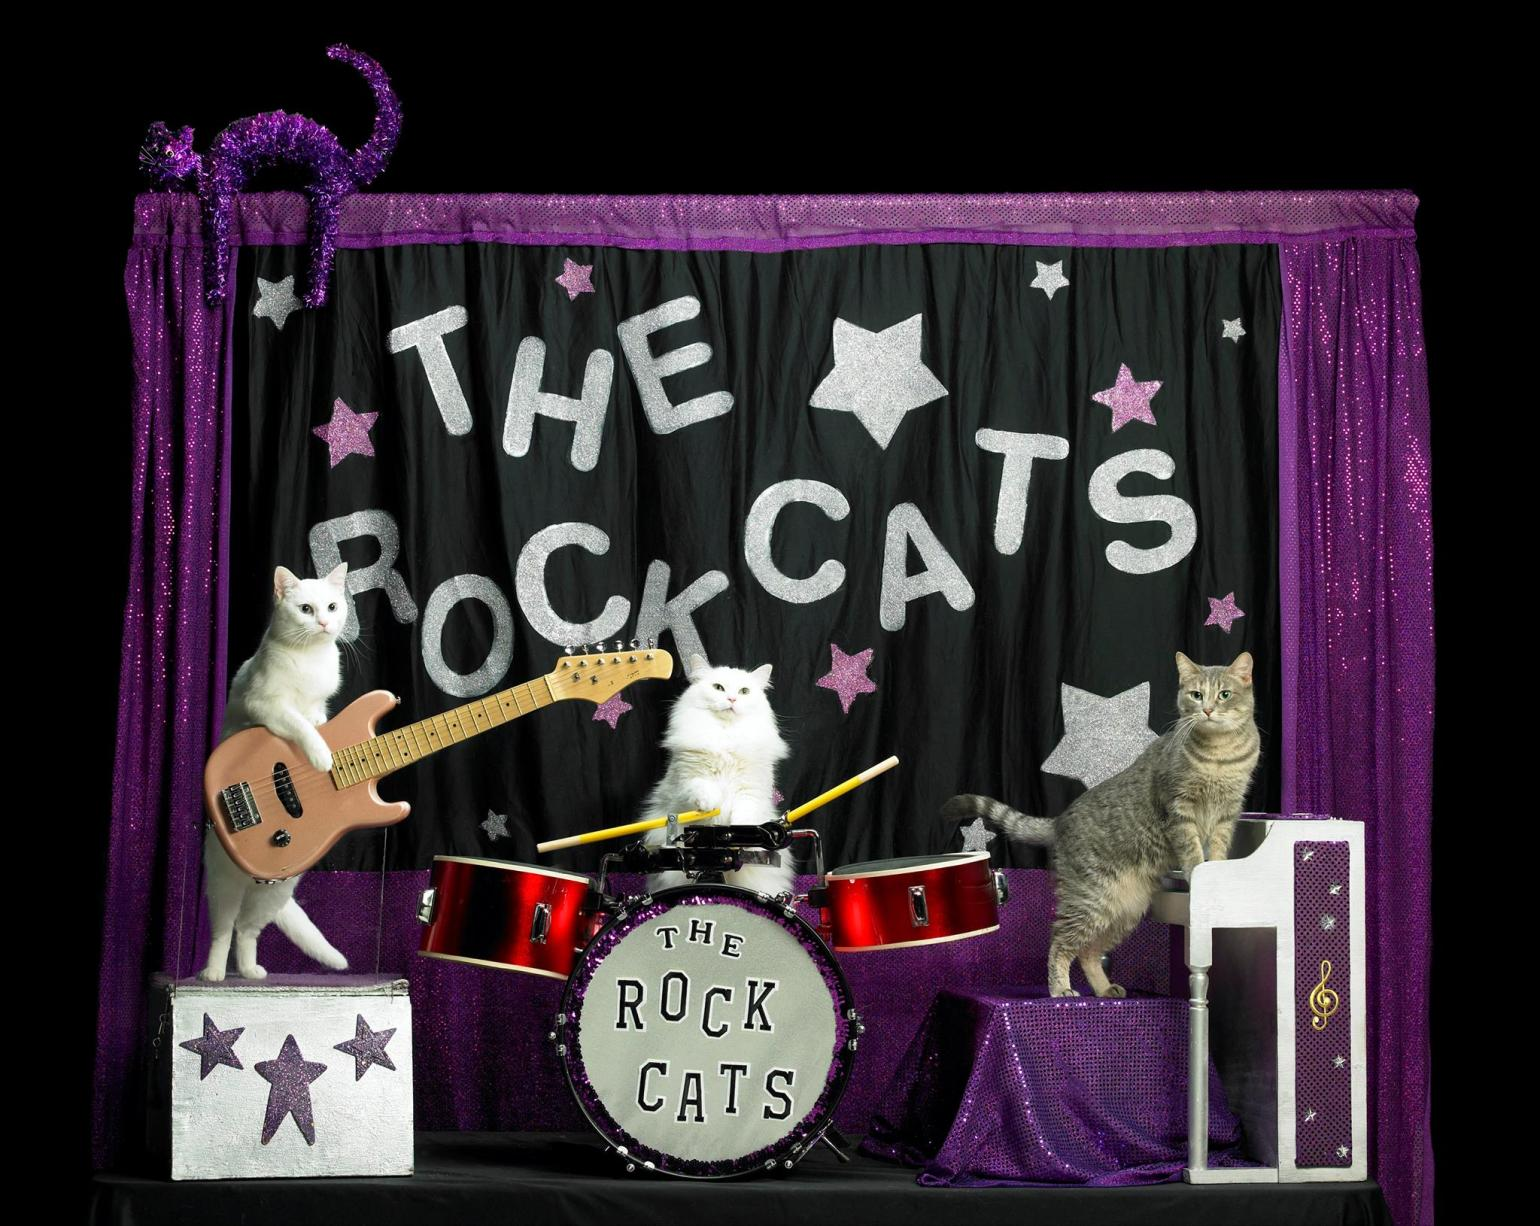 """The Rock Cats, part of the Amazing Acro-Cats, will play seasonal classics like """"A Cat in a Manger"""" and """"God Rest Ye Merry Kittens."""" (Photo via The Amazing Acro-Cats Meowy Catmas on Facebook)"""